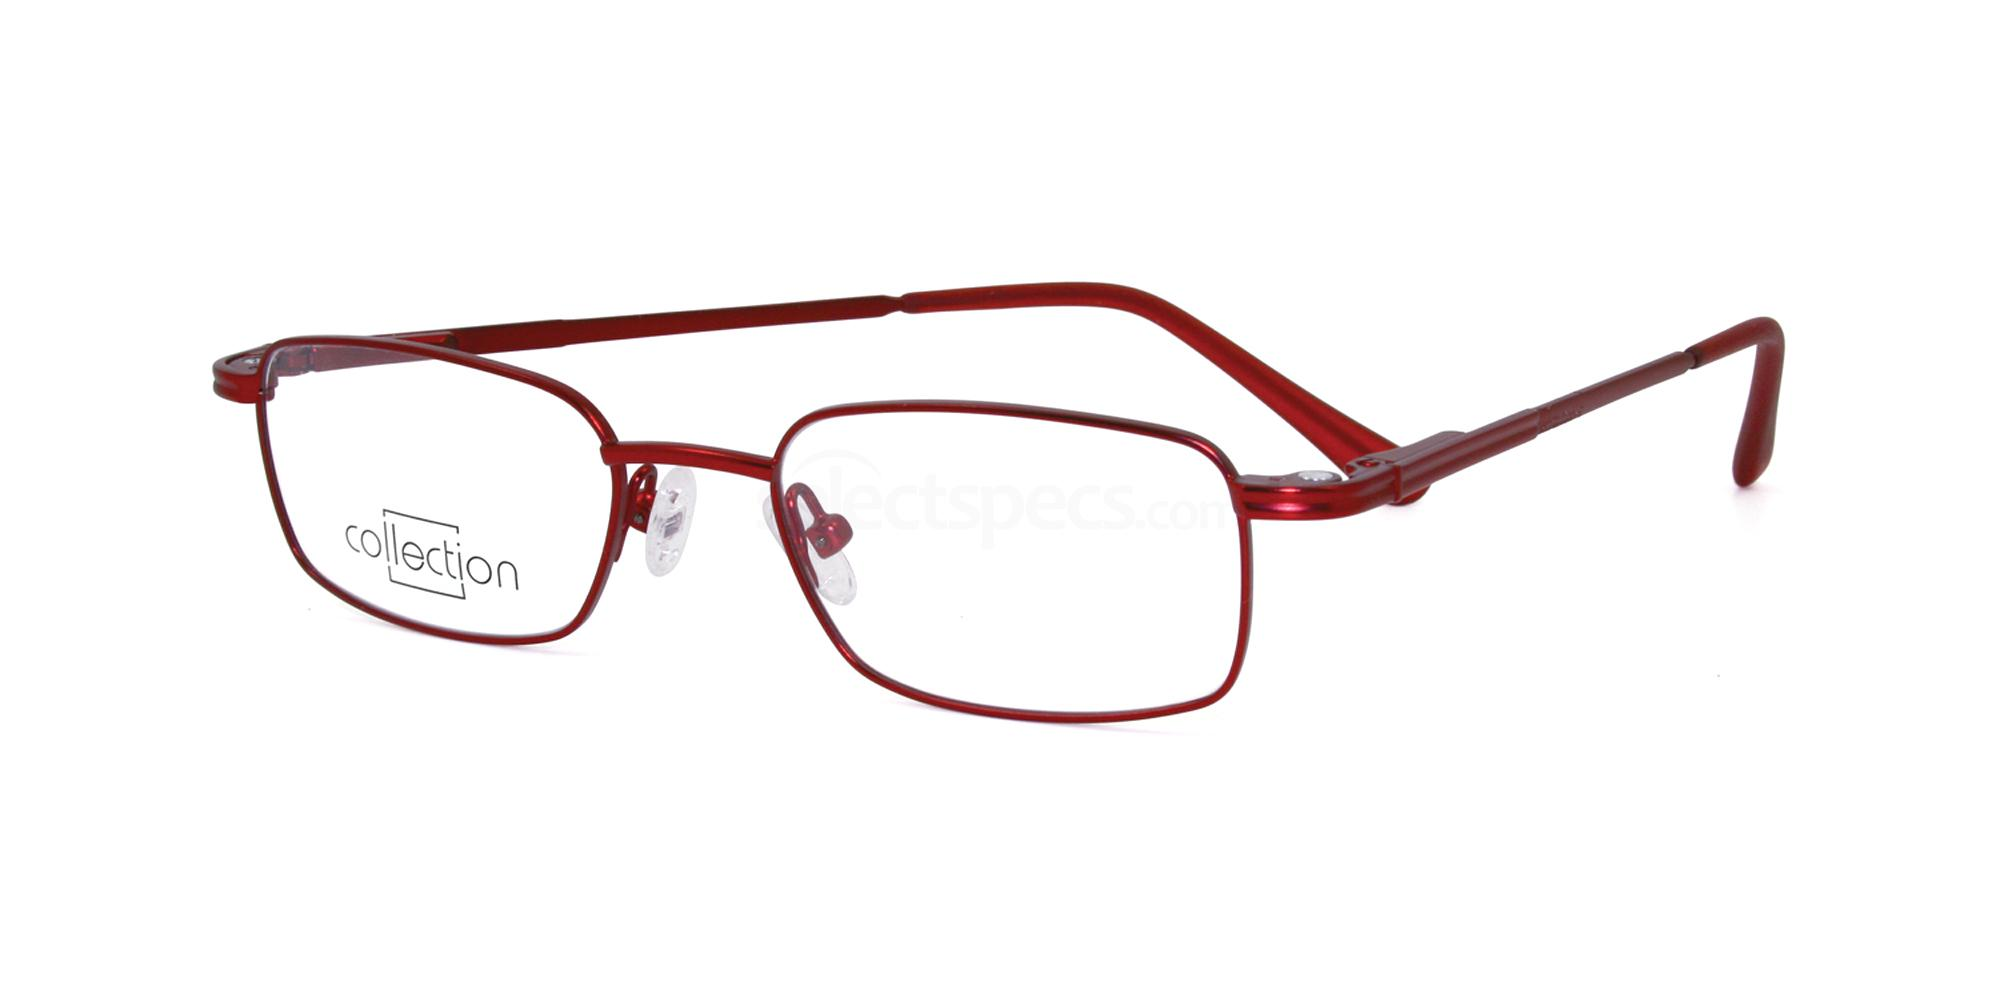 C2 C8129 - With clip on Glasses, Collection Eyewear